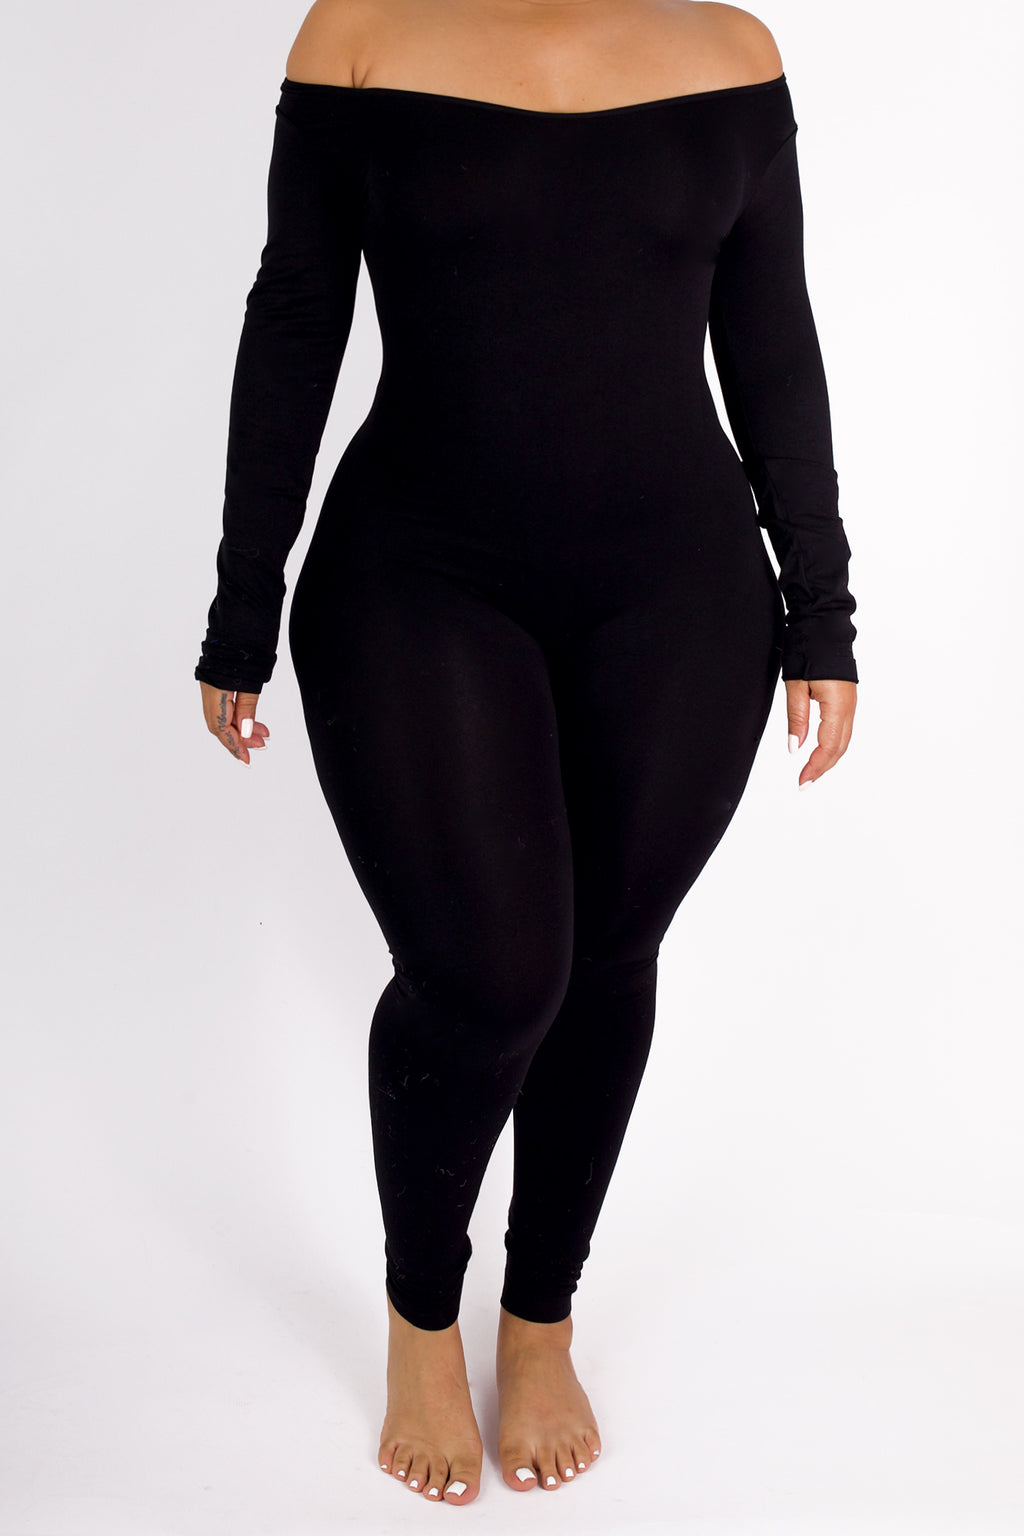 LONG SLEEVE Black Second Skin Bodysuit